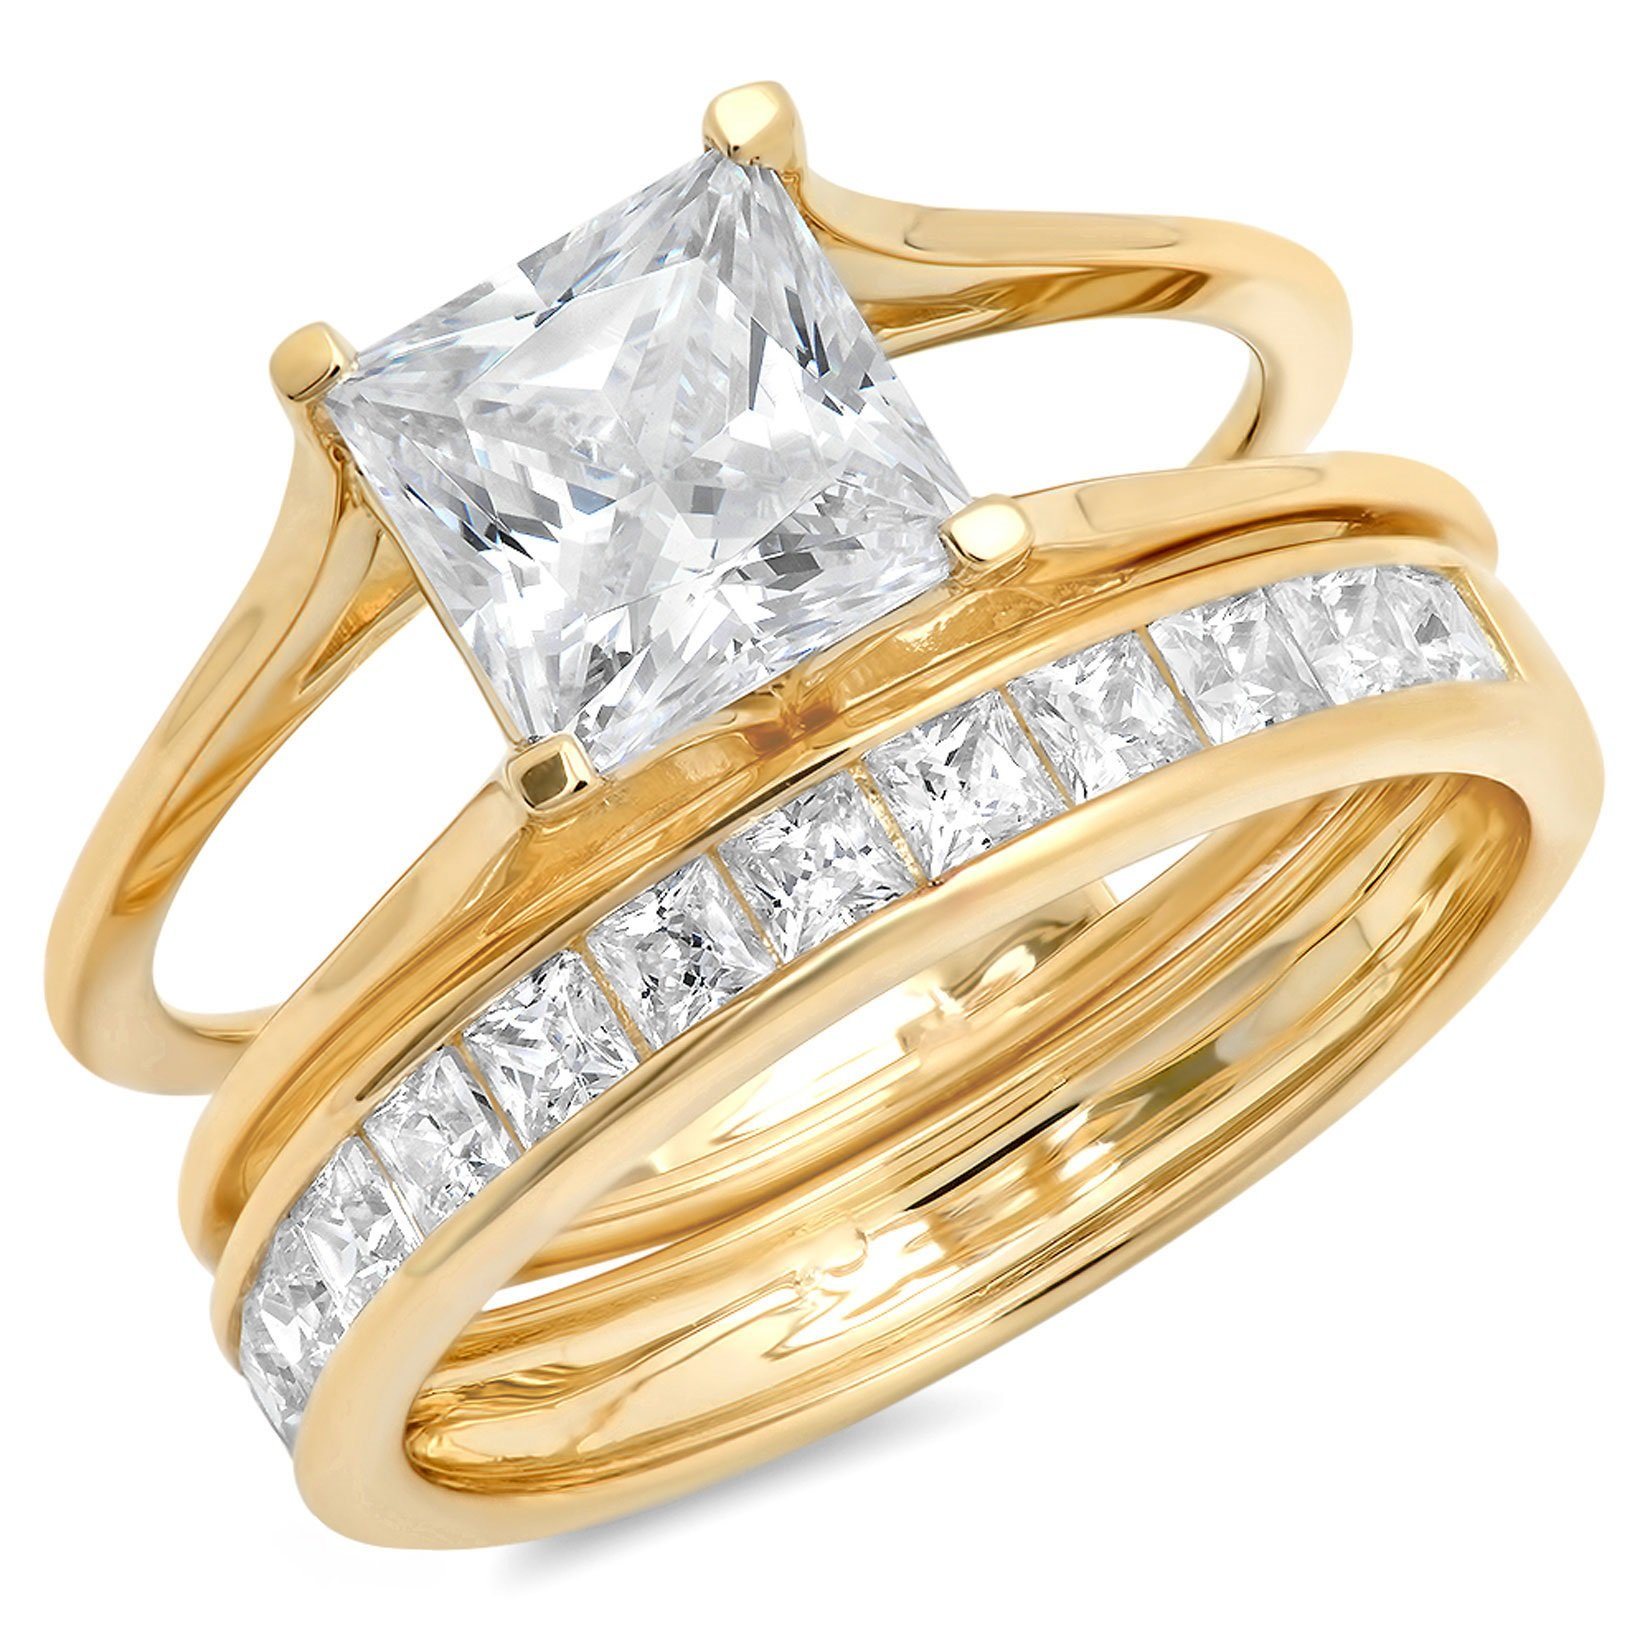 3.40ct Princess Cut Pave Solitaire with Accent Highest Quality Moissanite & Simulated Diamond Engagement Promise Statement Anniversary Bridal Wedding Ring Sliding Band set Real 14k Yellow Gold Sz 8 by Clara Pucci